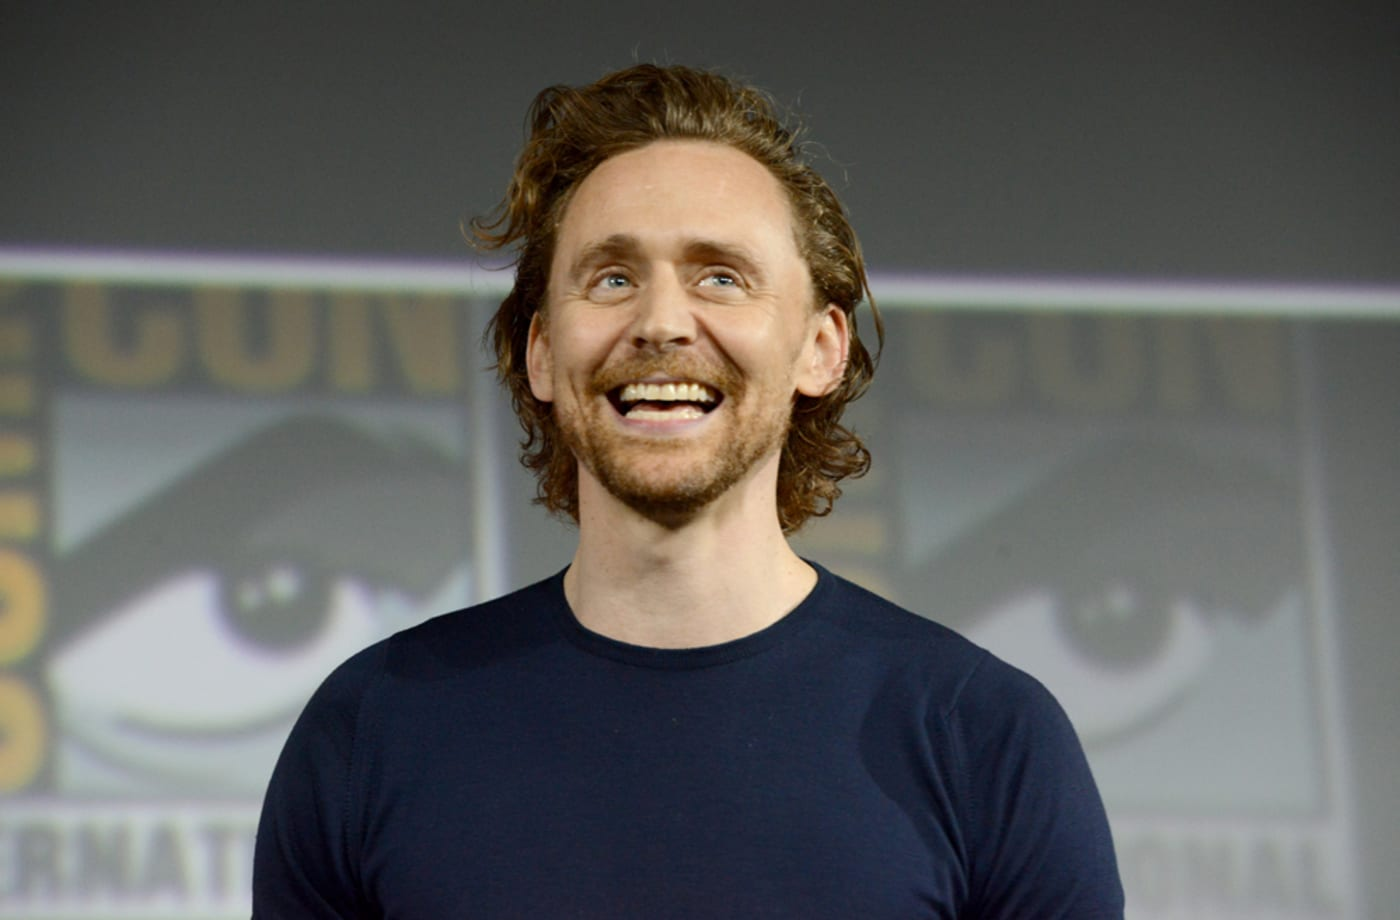 Tom Hiddleston speaks at the Marvel Studios Panel during 2019 Comic Con